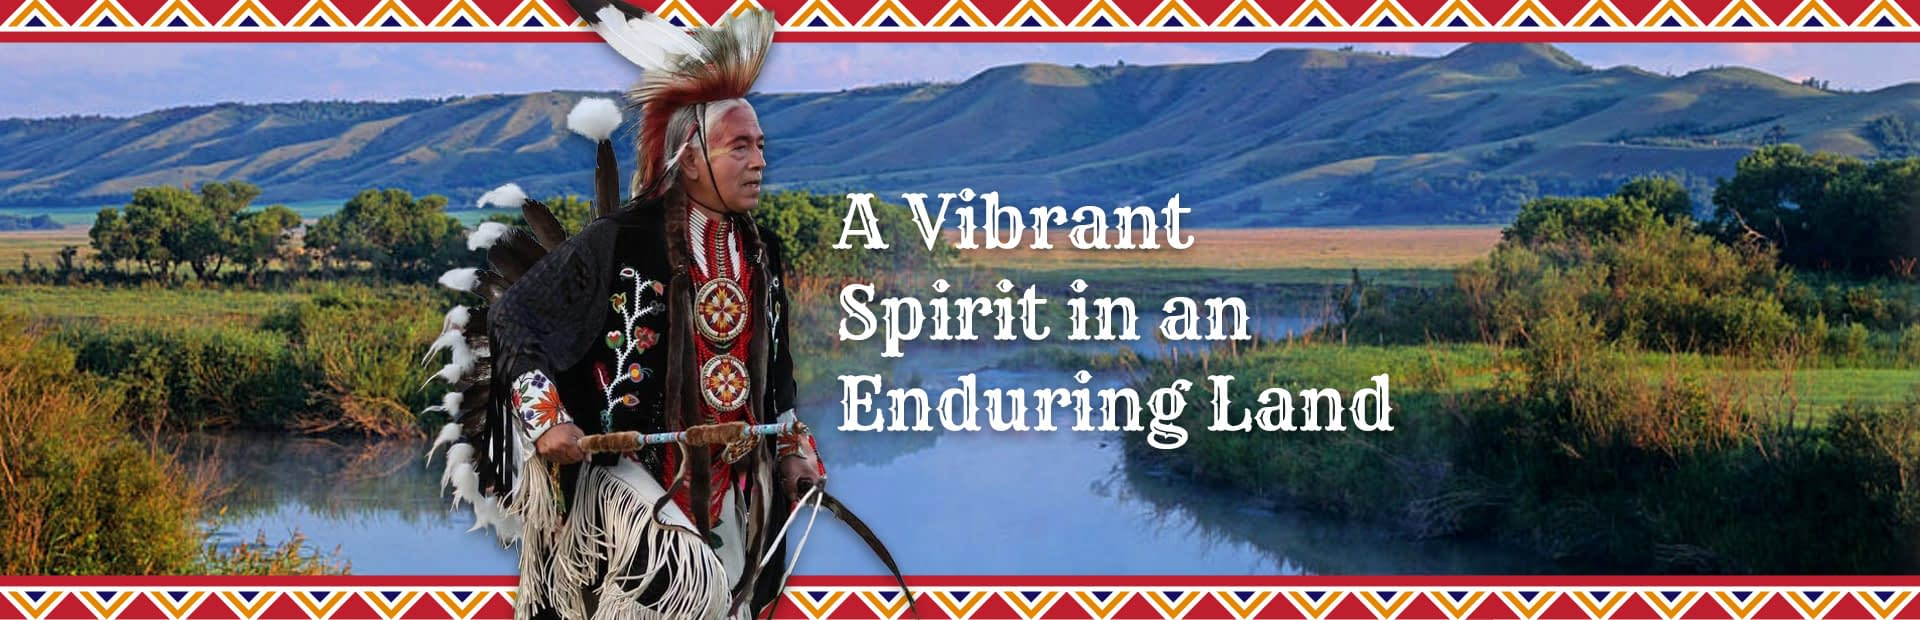 A vibrant spirit in an enduring land.